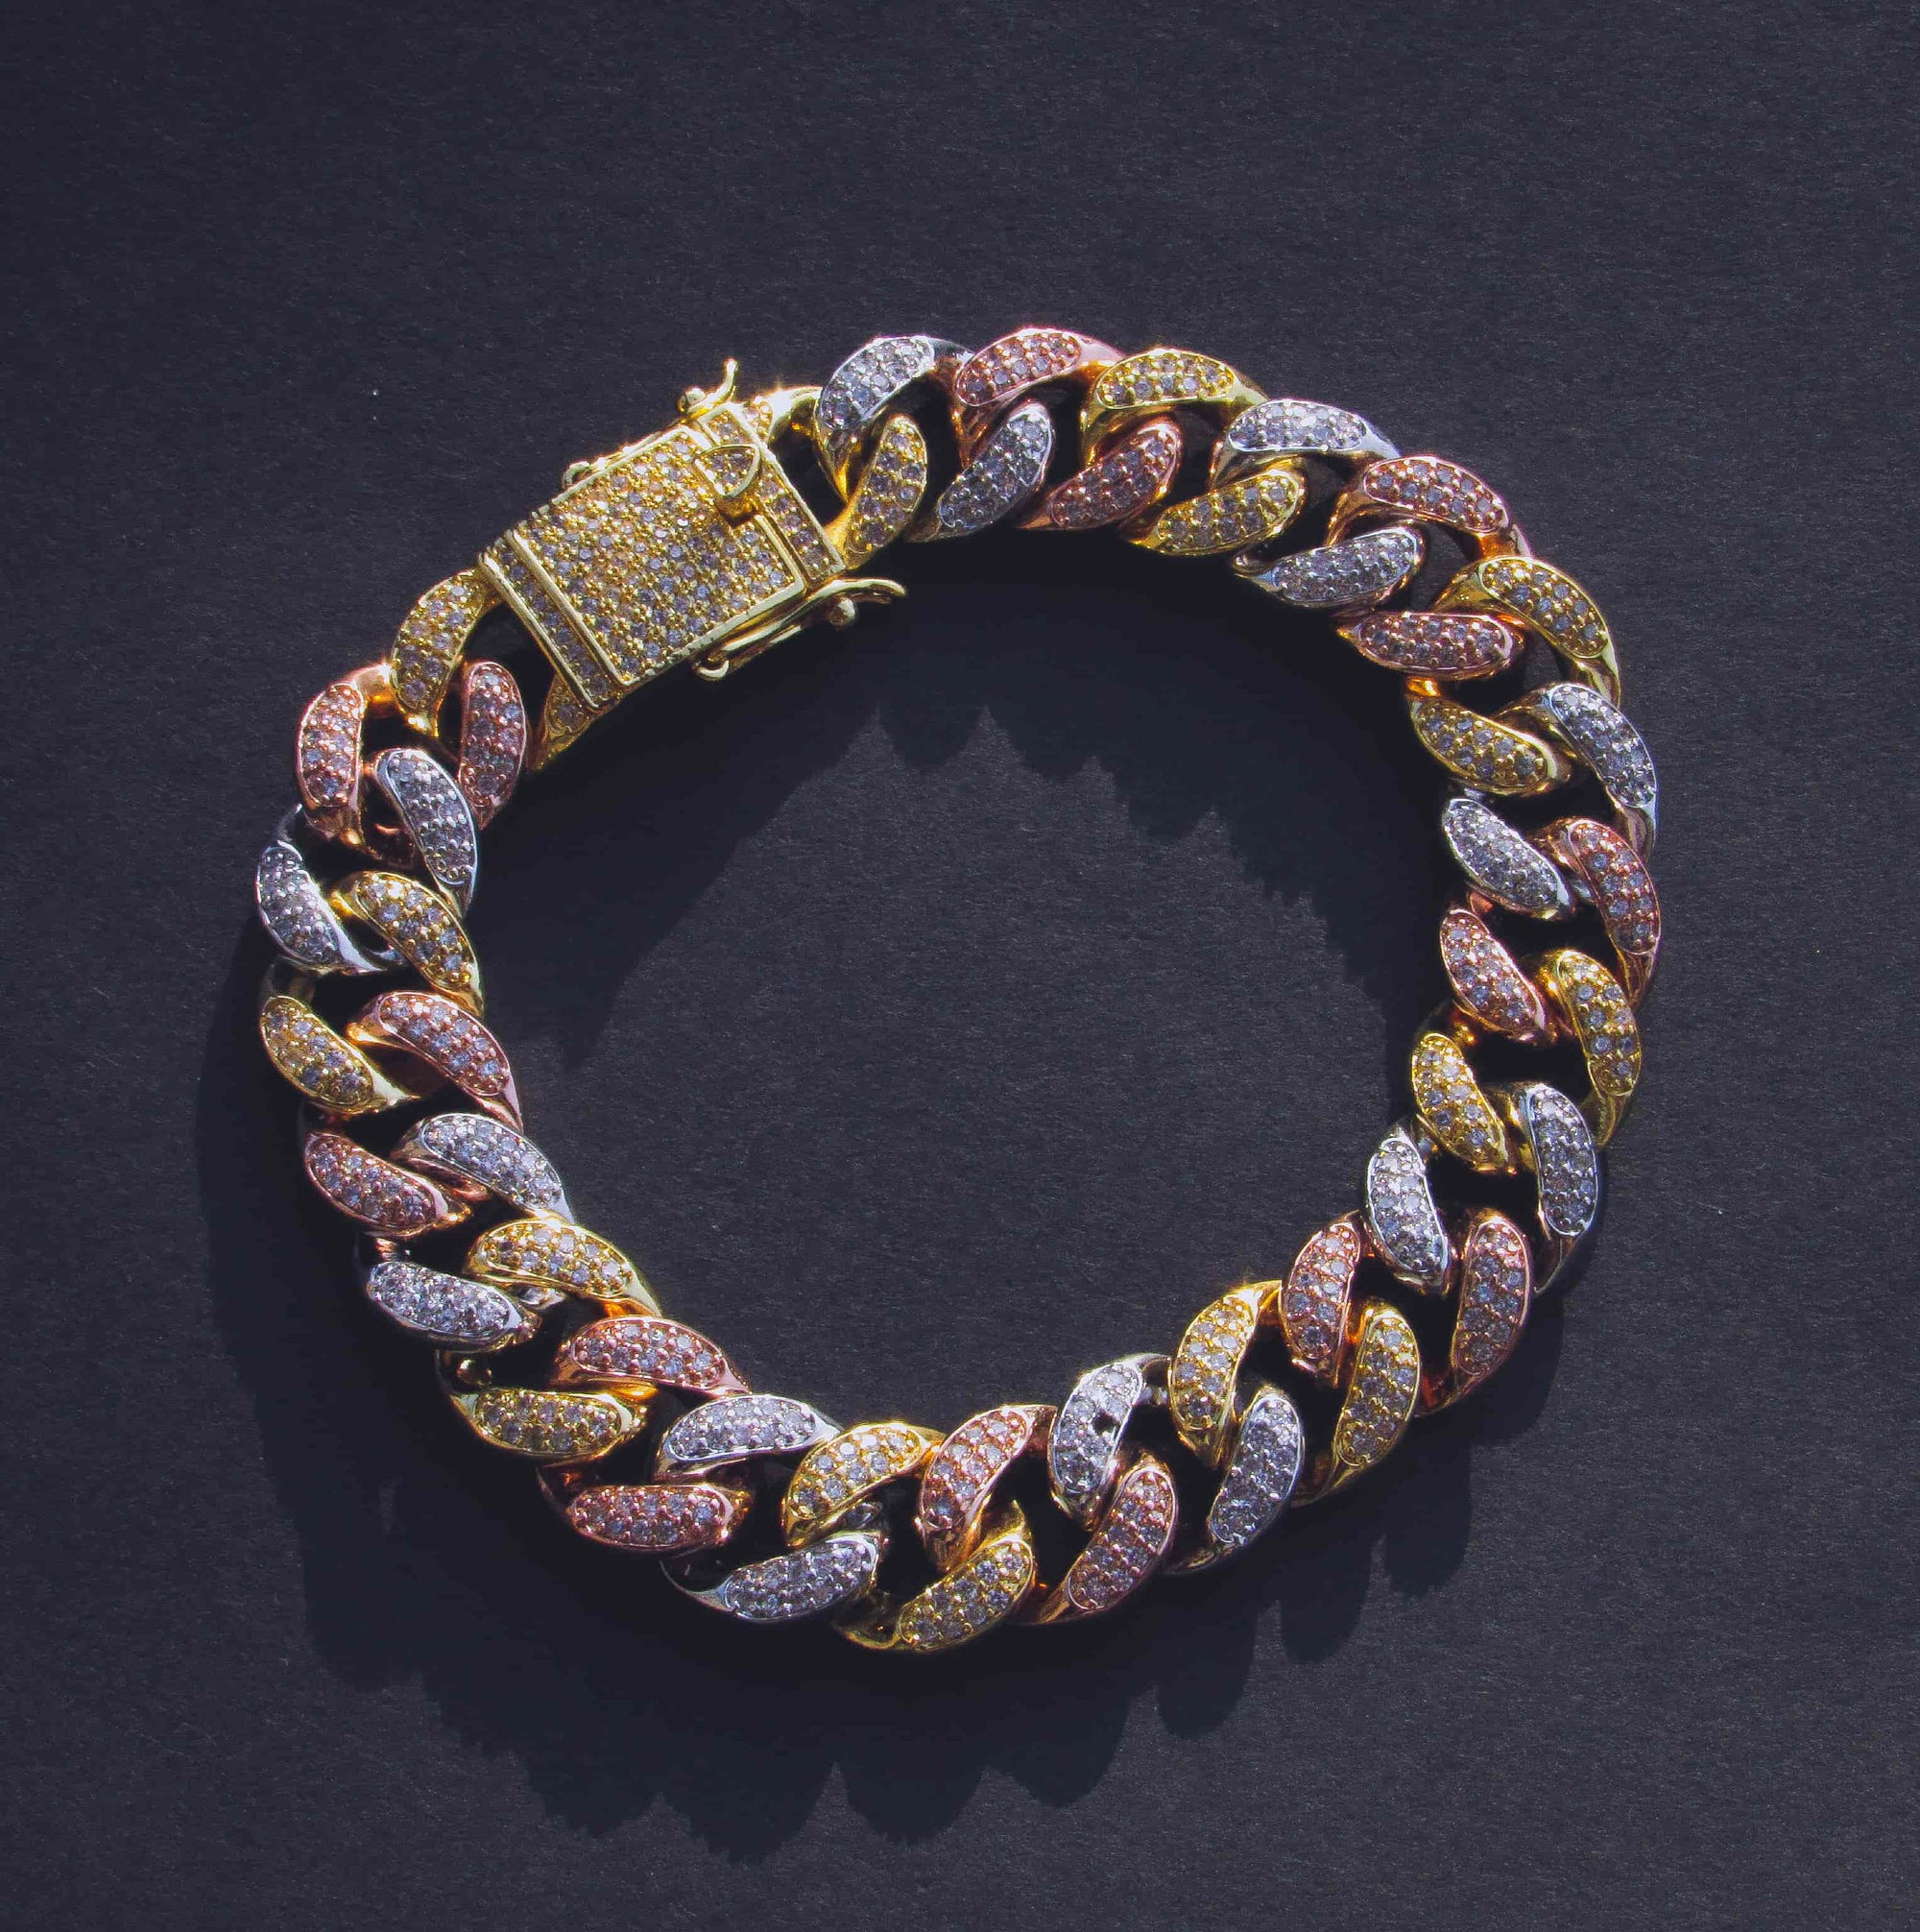 12mm Multicolored Cuban Link Bracelet - IcedGold